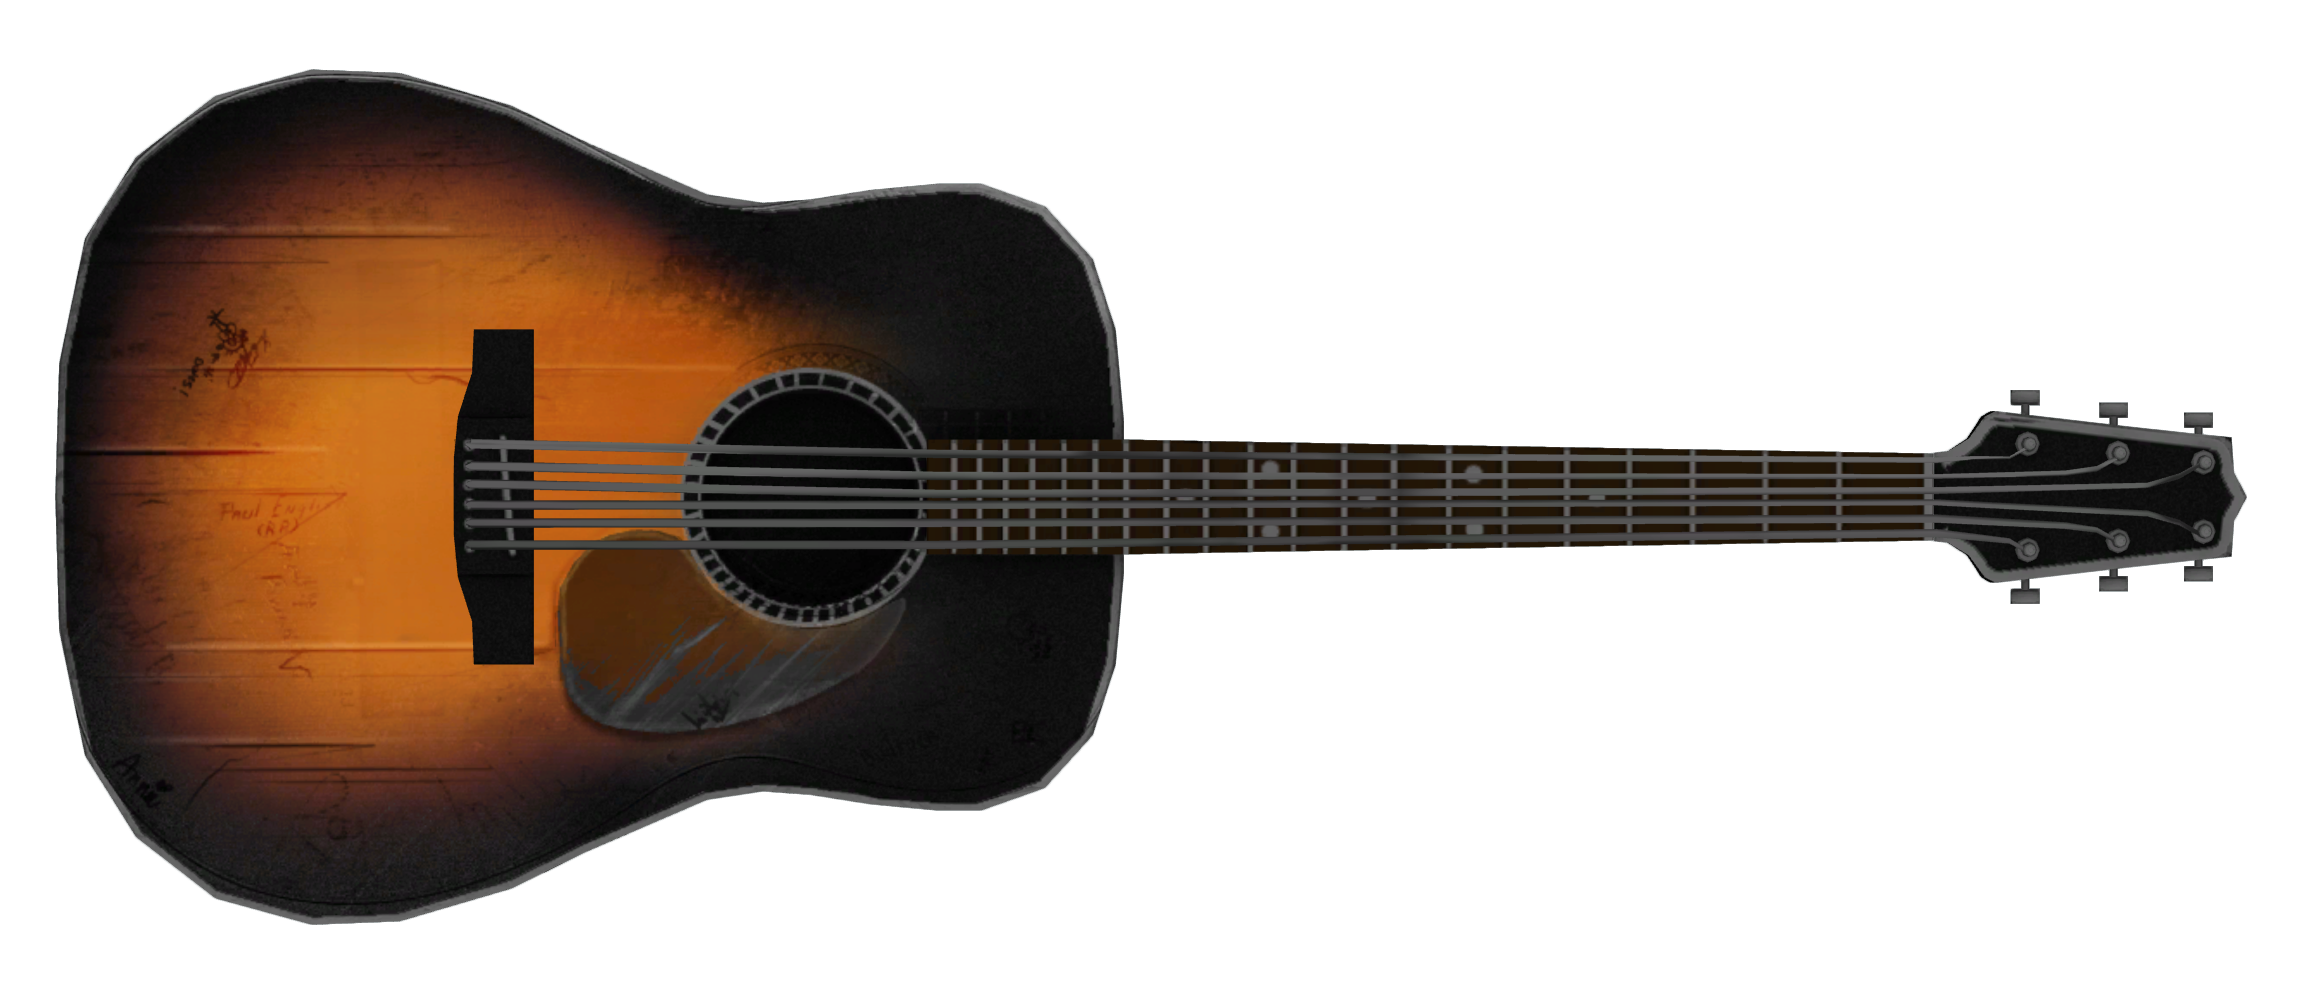 Acoustic guitar png clipart images gallery for free download.